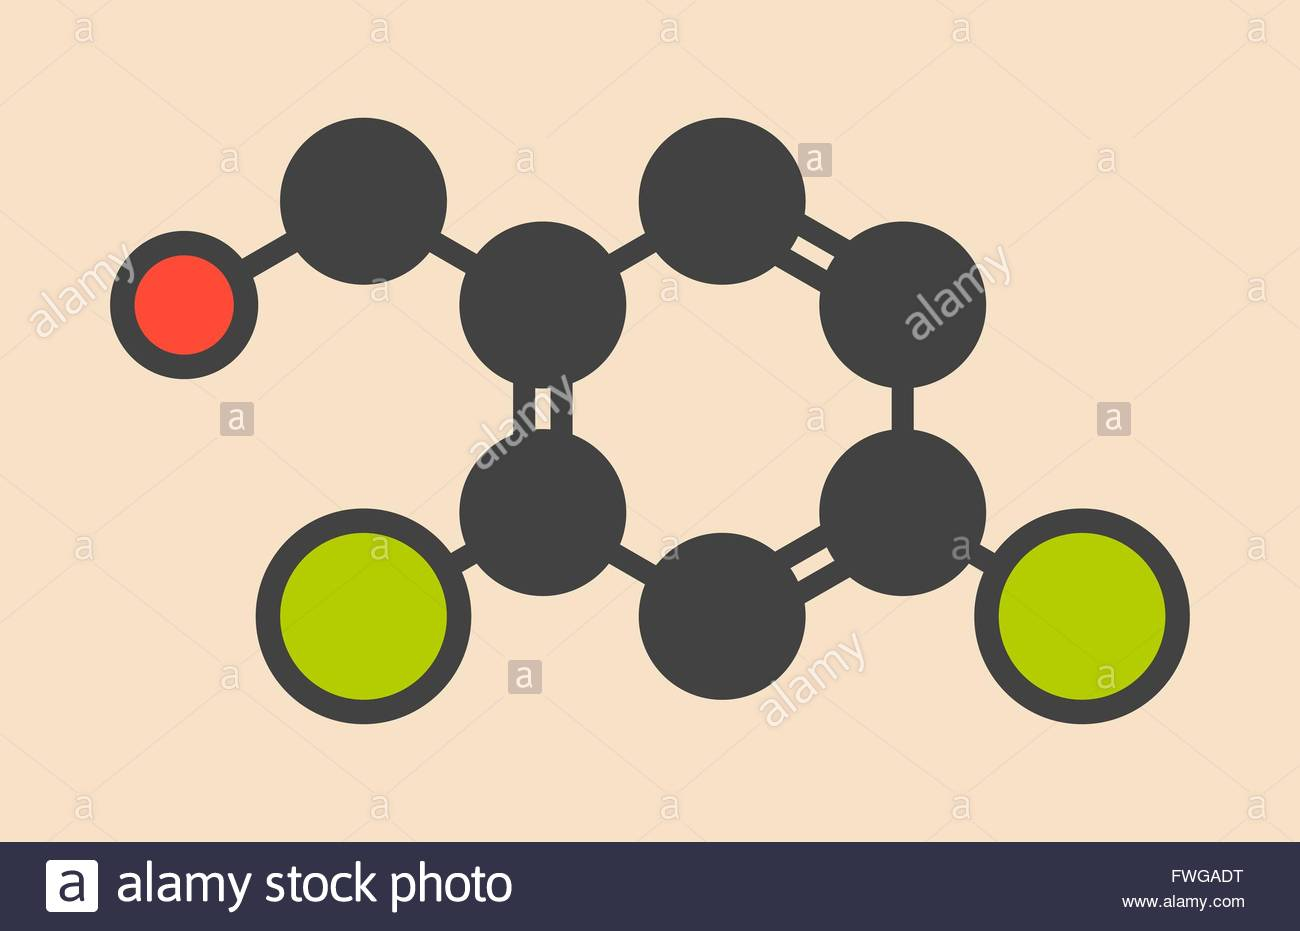 Antiseptic Molecule Stock Photos & Antiseptic Molecule Stock.